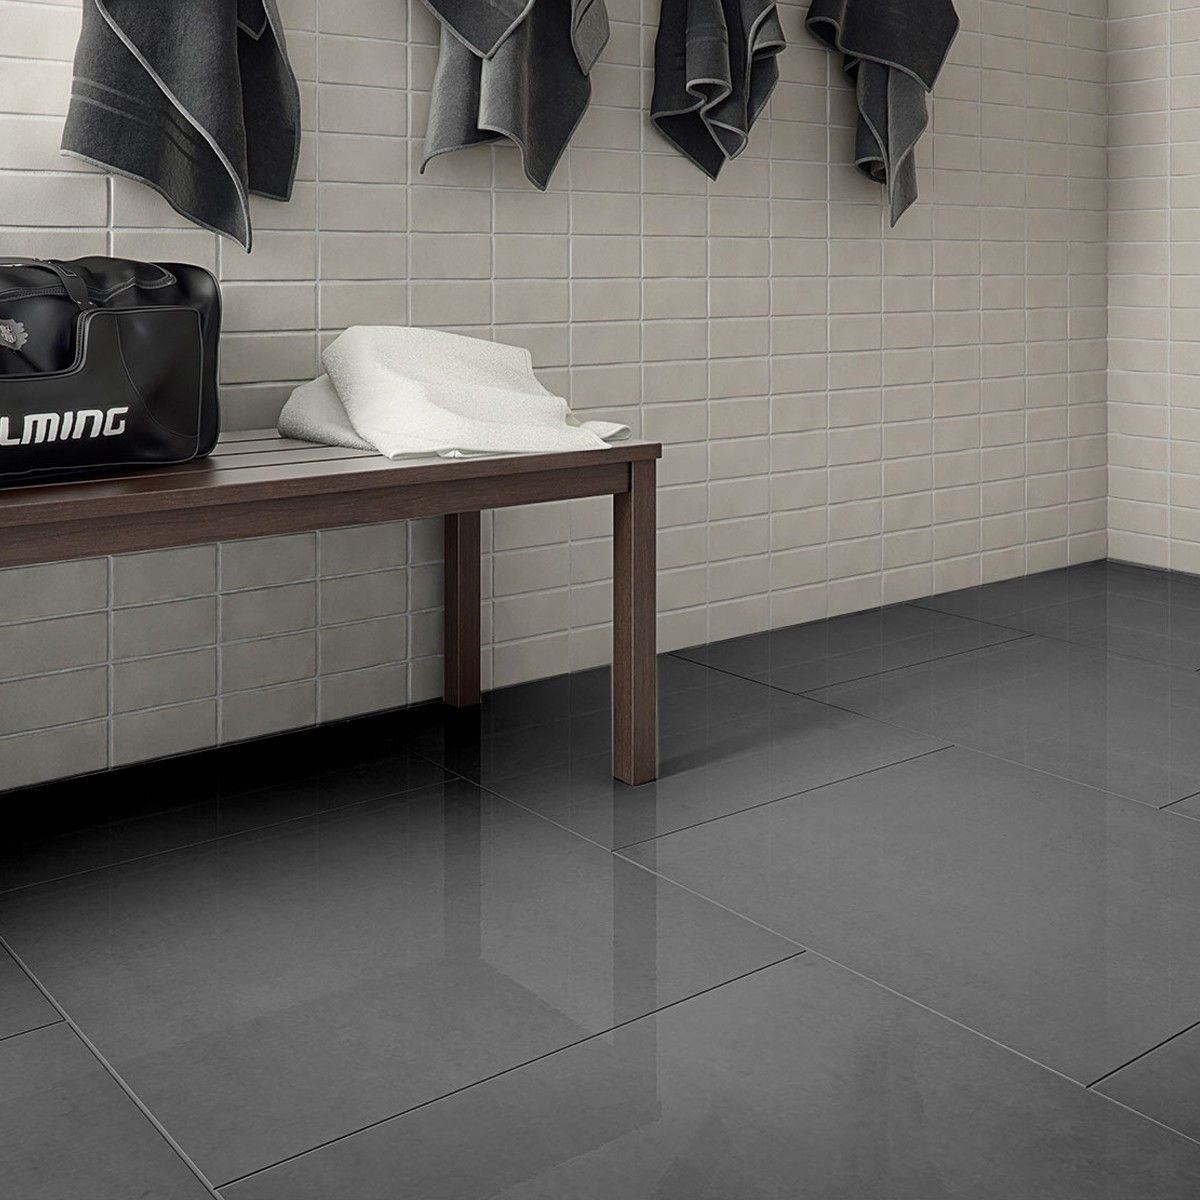 Crown tiles online shop stocks large ranges of tiles tiles for crown tiles online shop stocks large ranges of tiles tiles for walls floors whole rooms bathrooms kitchens and more fast secure delivery dailygadgetfo Images